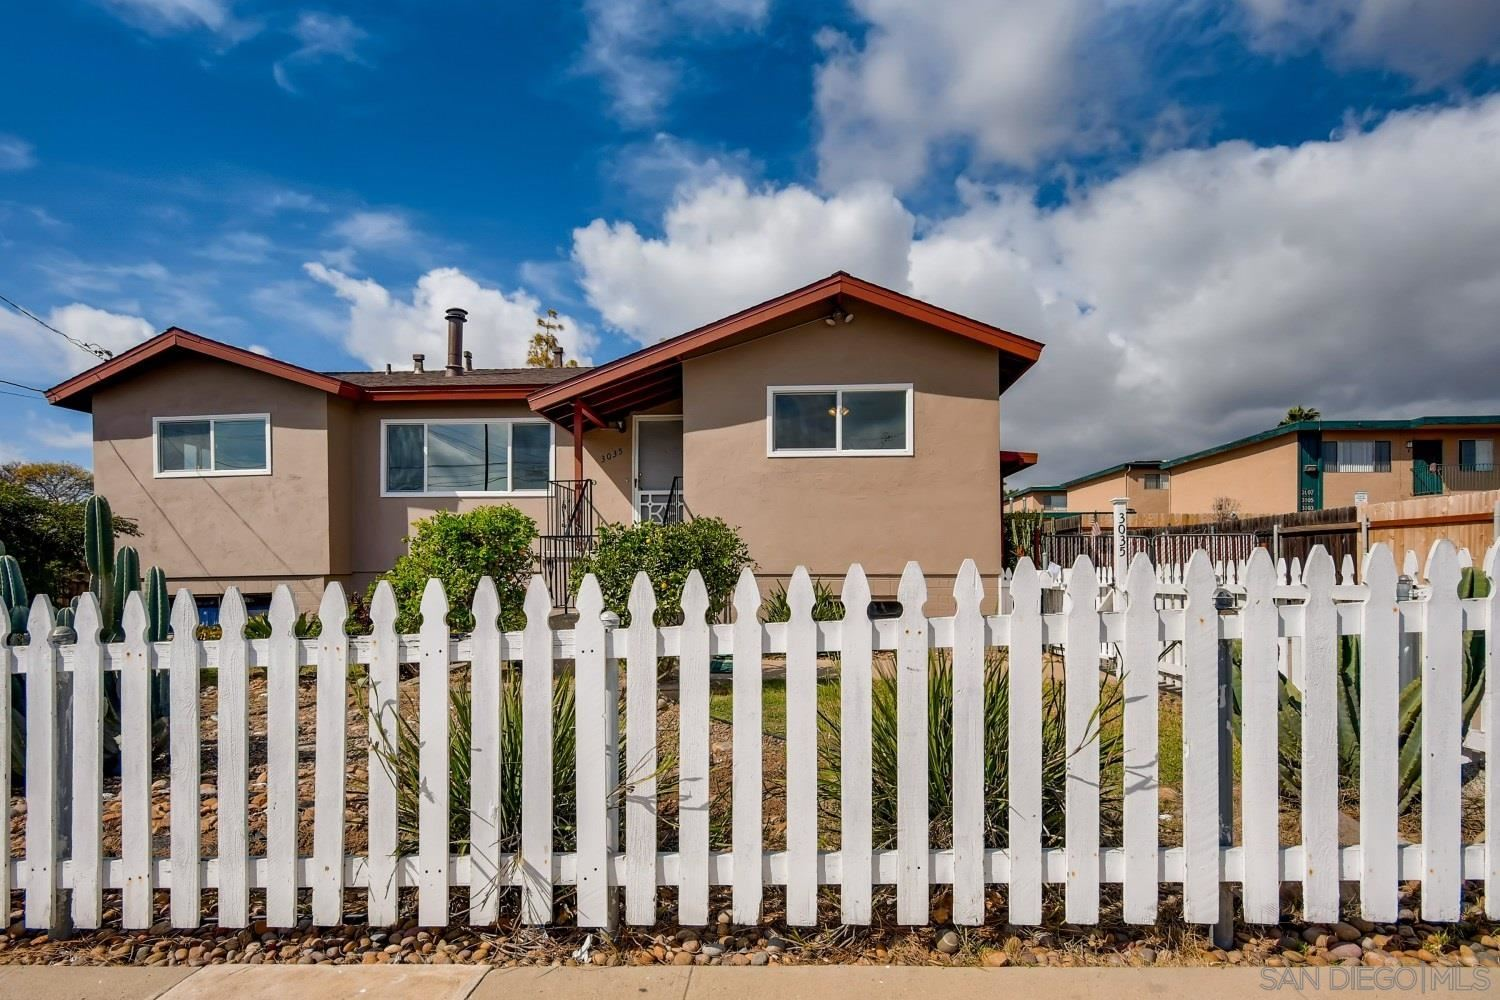 Photo of 3035 E 18th St, National City, CA 91950 (MLS # 210006117)